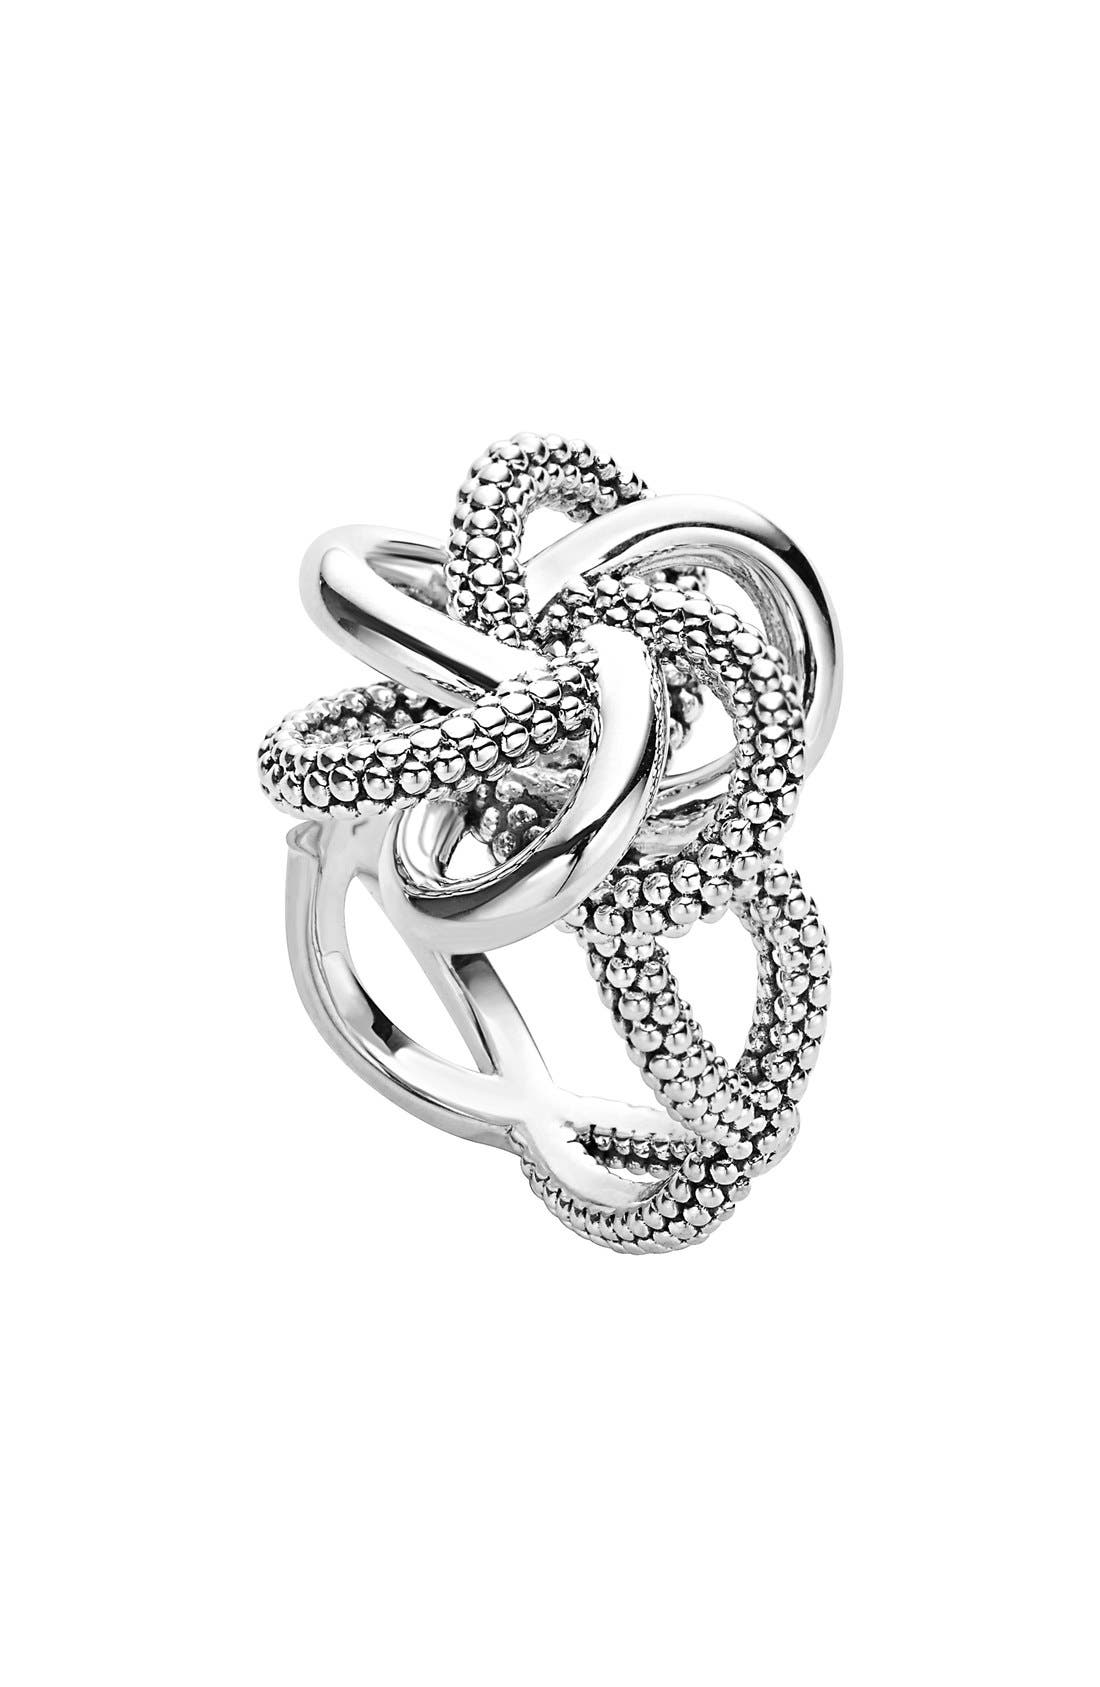 'Love Knot' Twist Ring,                             Main thumbnail 1, color,                             040